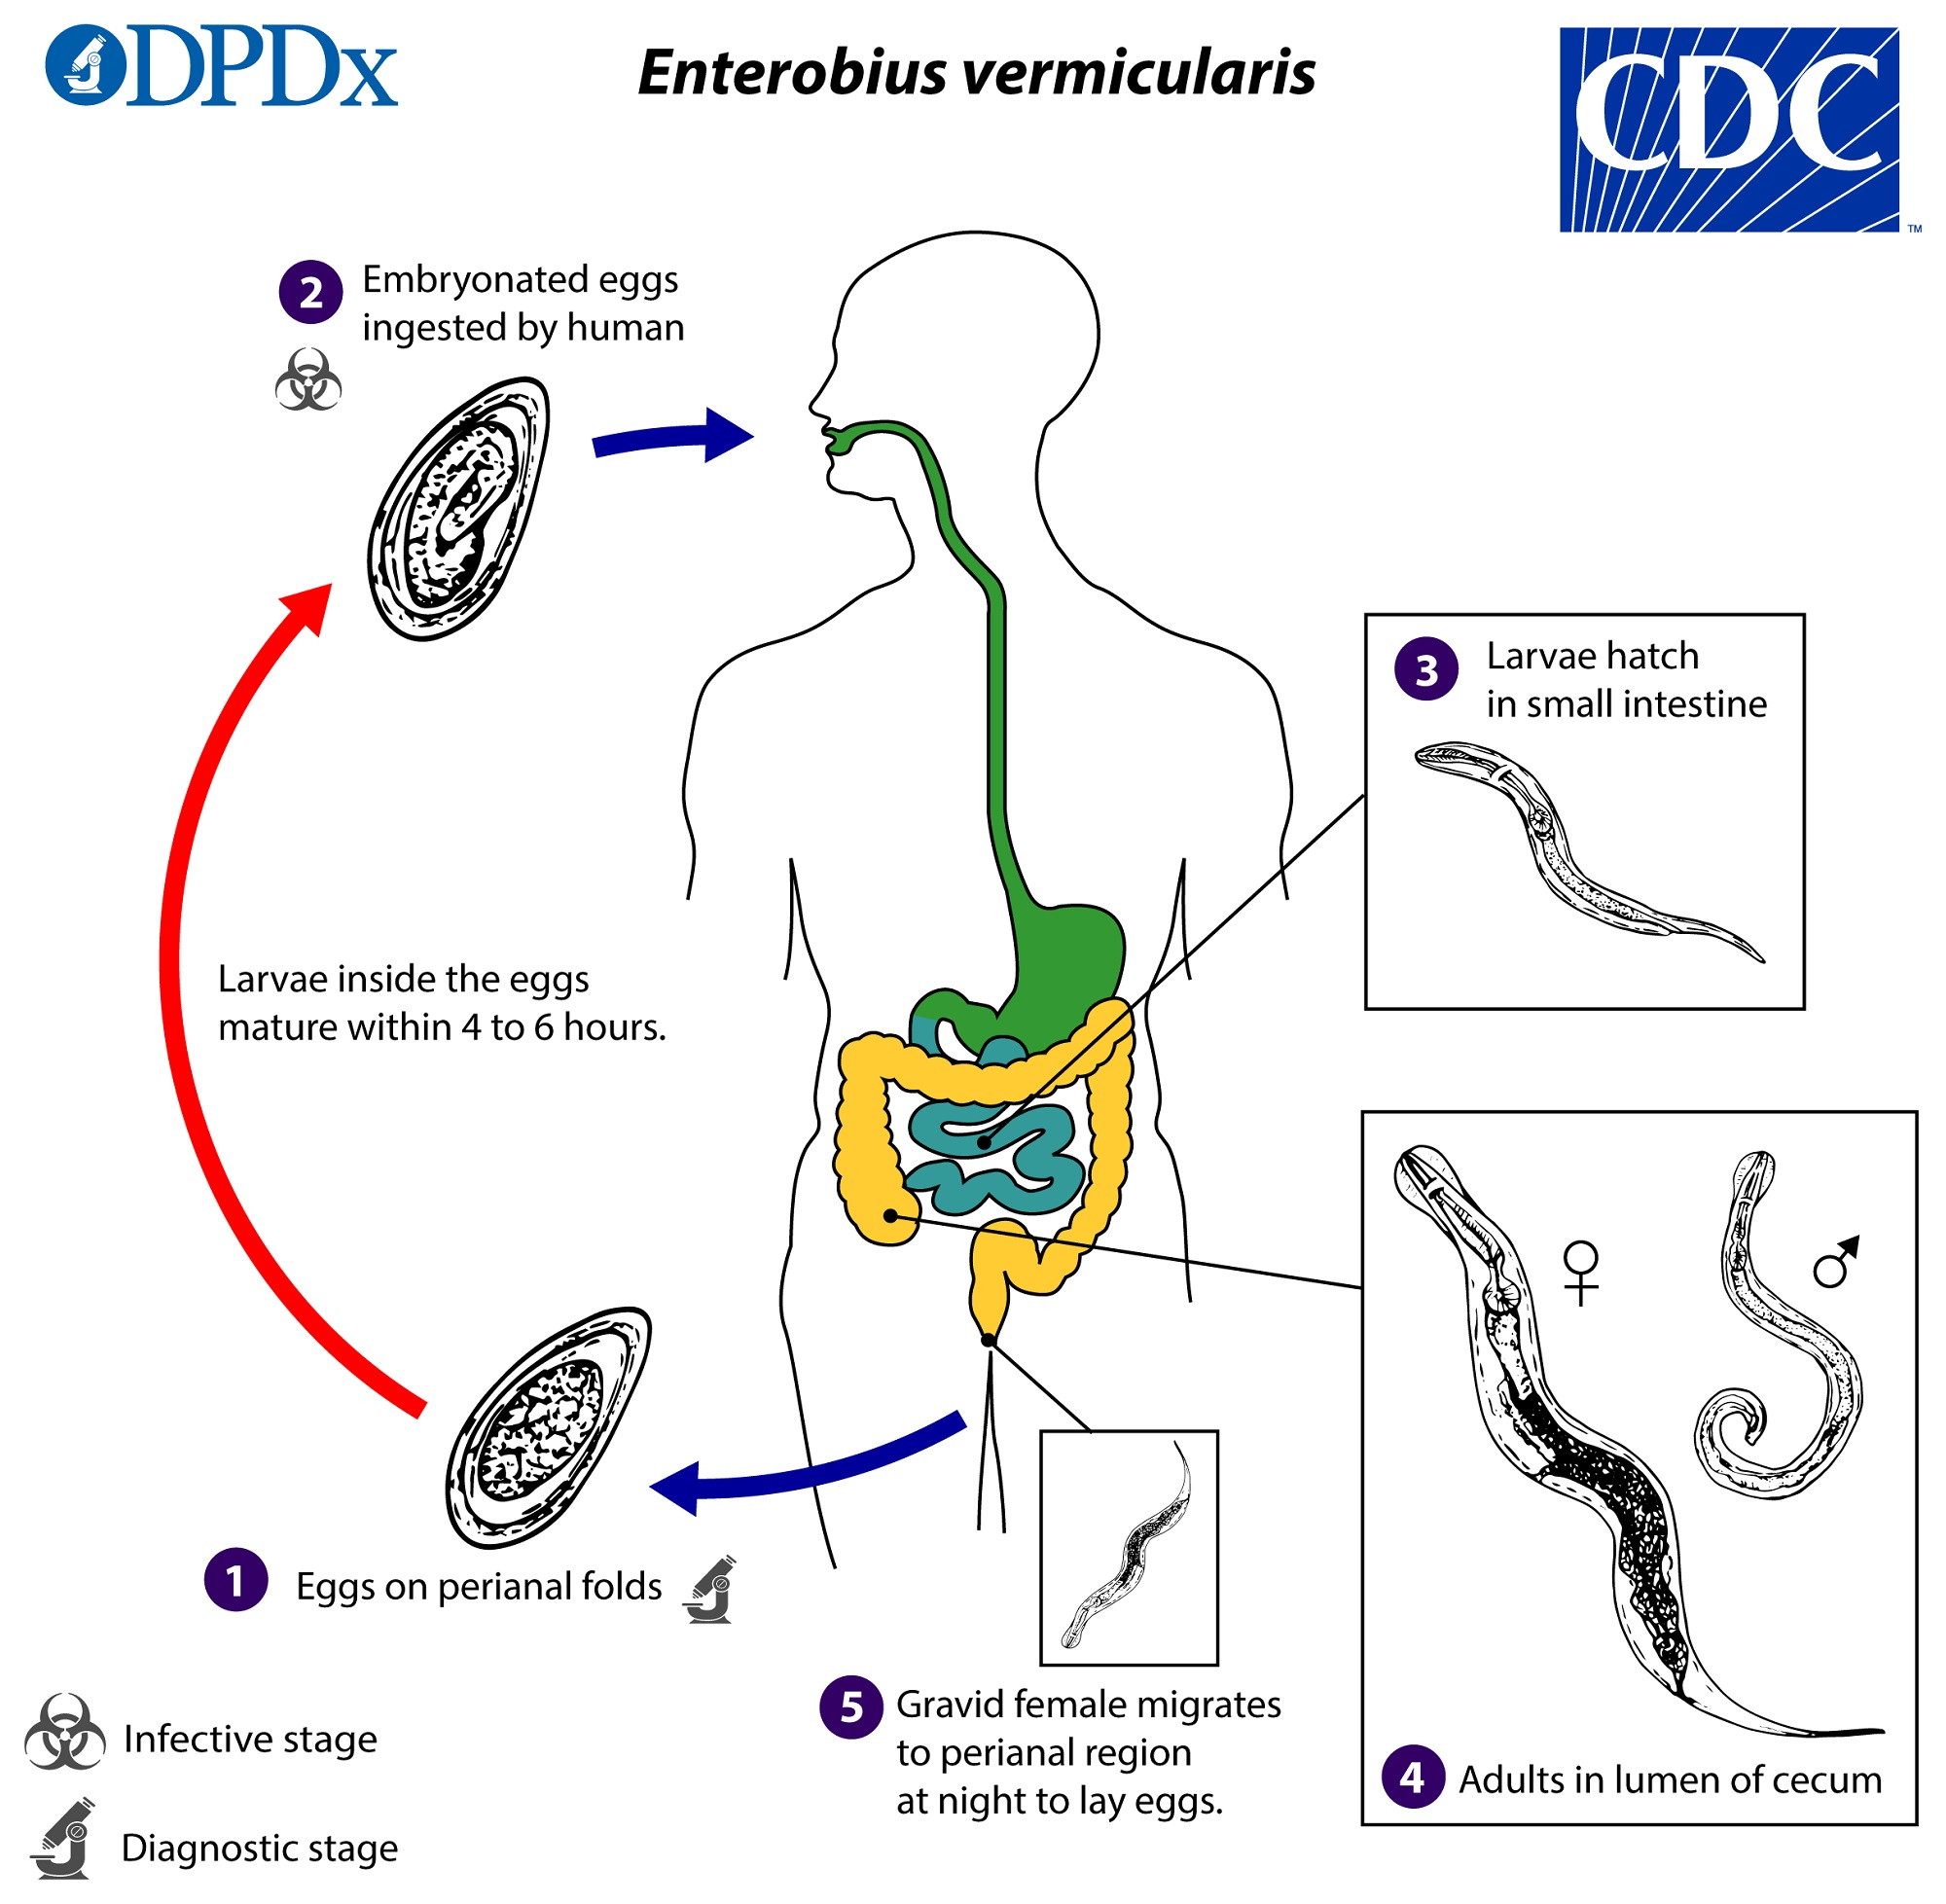 enterobius vermicularis causes what disease